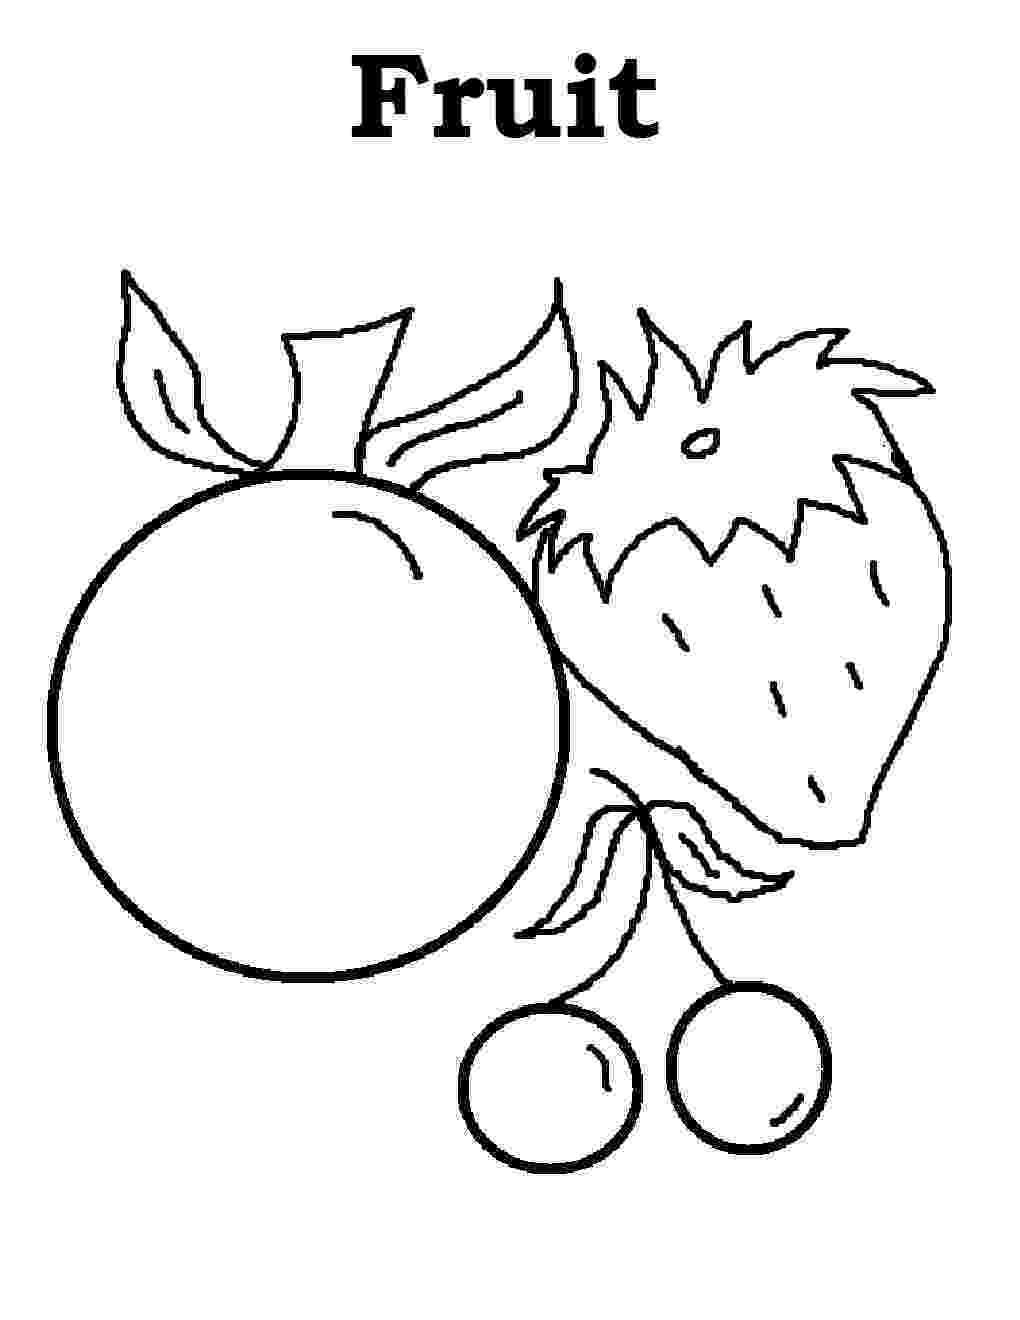 fruit coloring sheets fruits and vegetables coloring pages for kids printable fruit sheets coloring